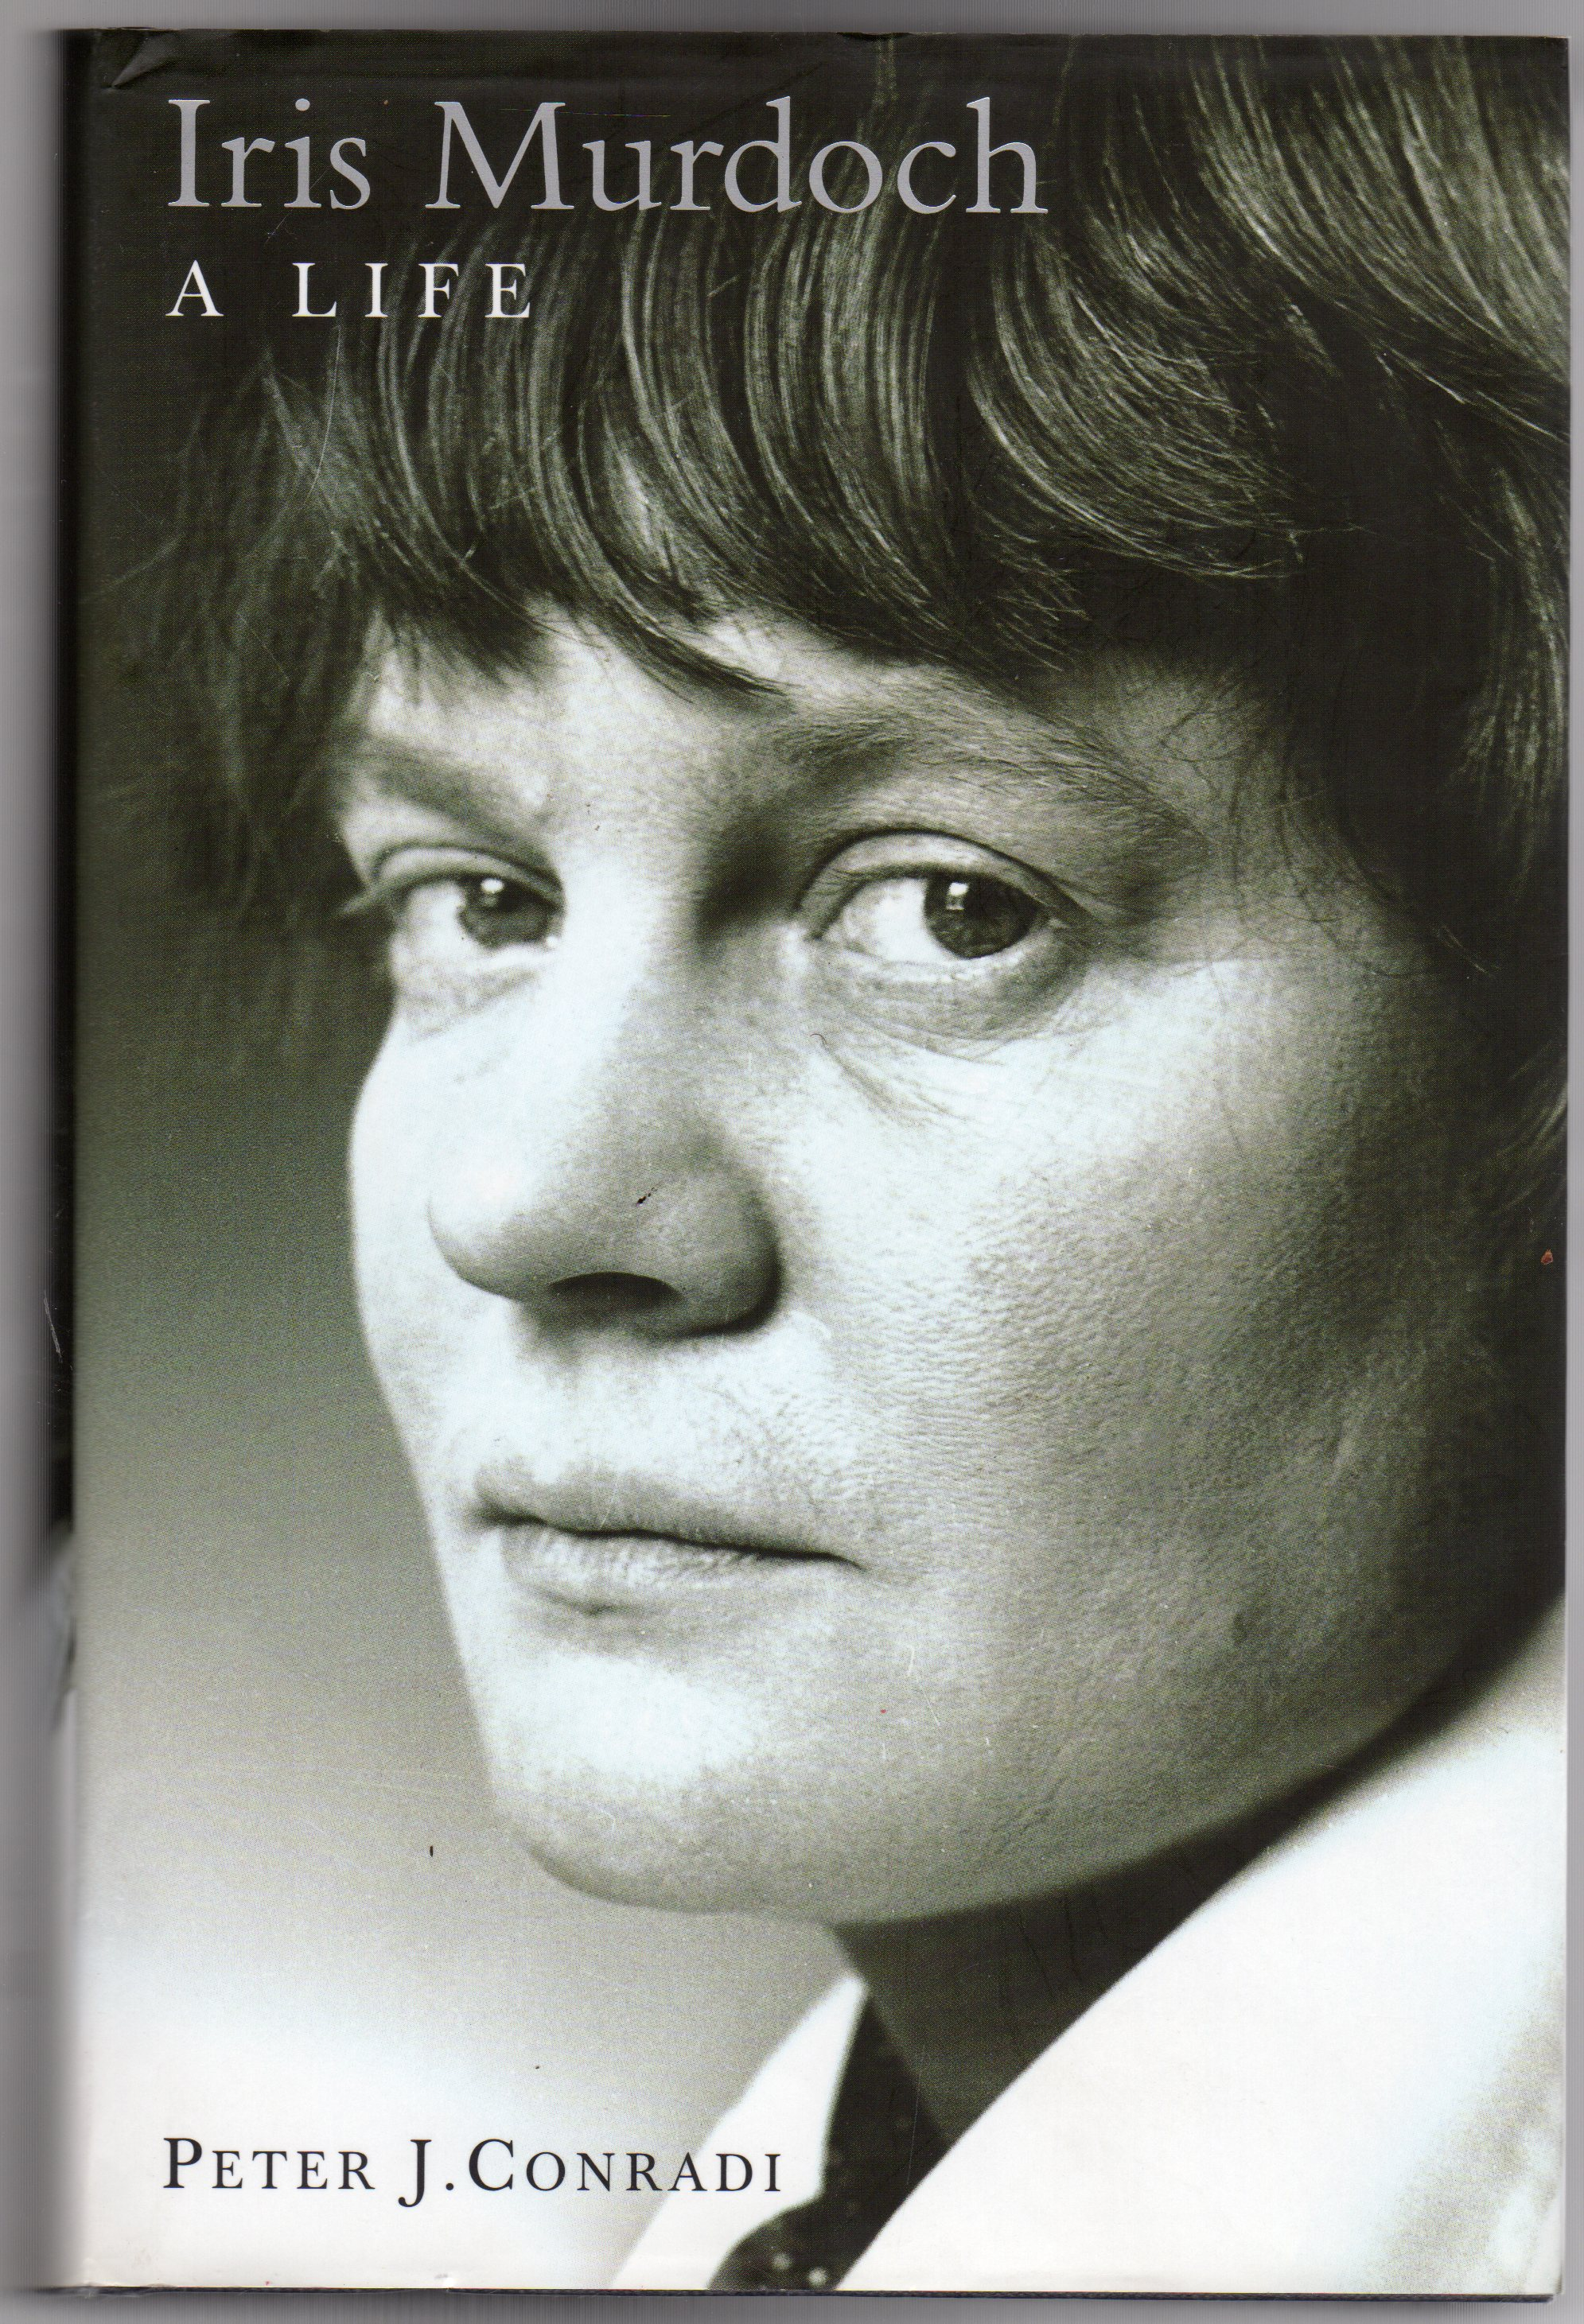 Image for Iris Murdoch: A Life - The Authorized Biography